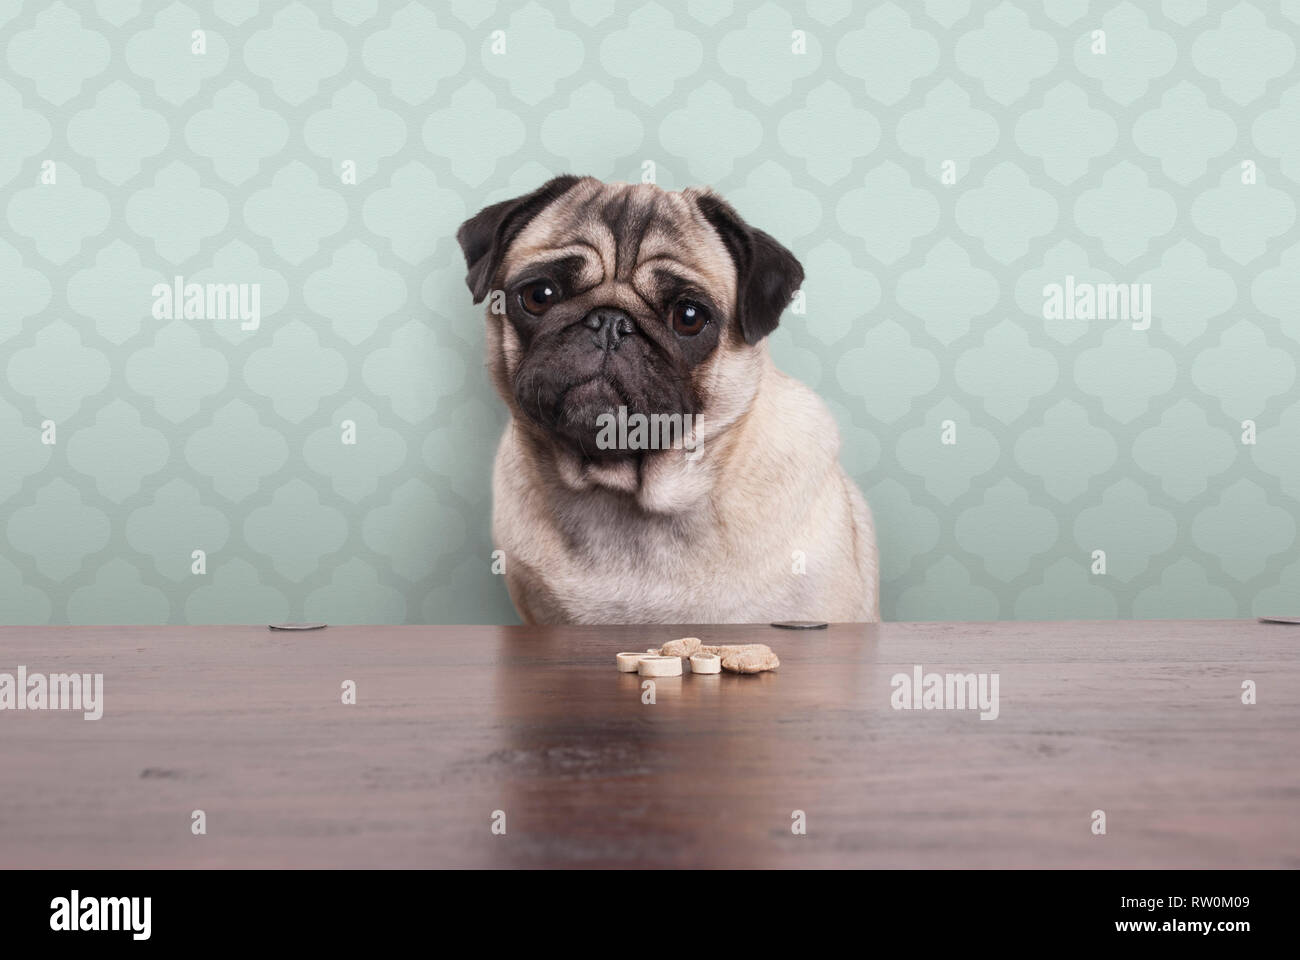 cute pitiful pug puppy dog on a no carbs diet sitting at wooden table with snacks in front, on pastel green background Stock Photo